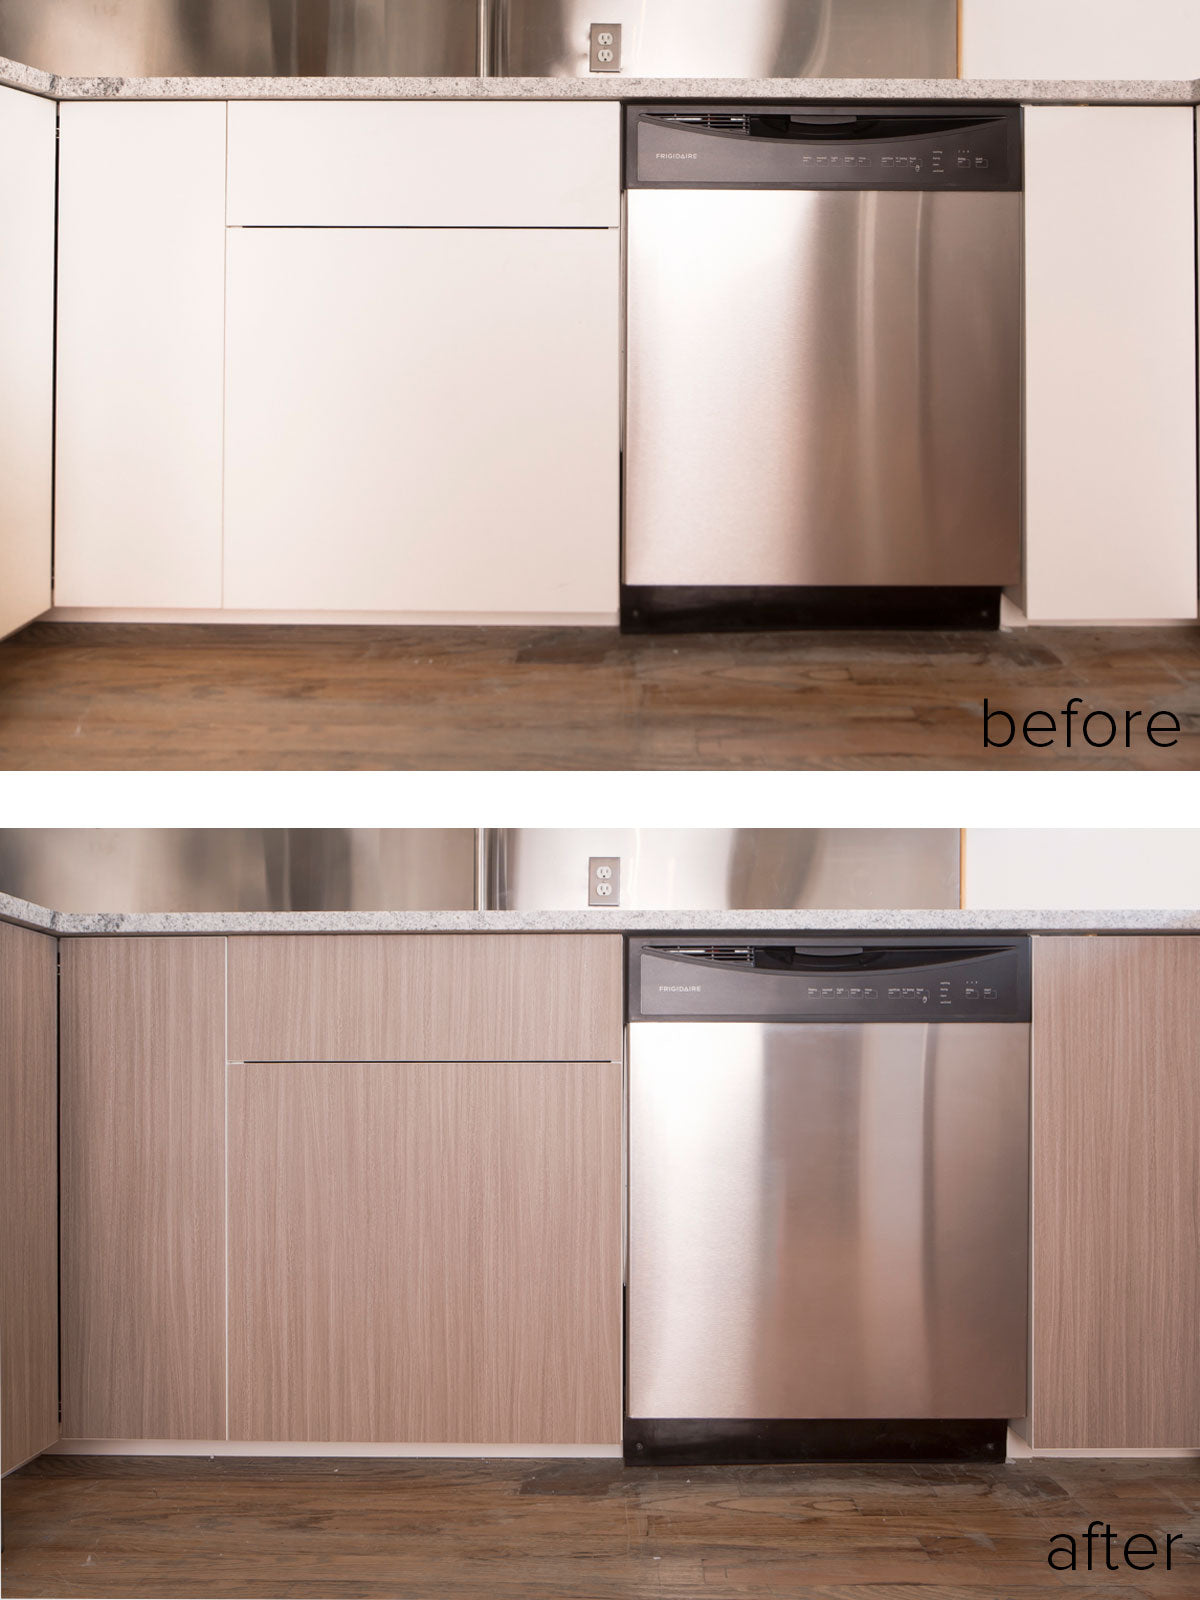 Before, During, After: PANYLing An IKEA SEKTION Kitchen